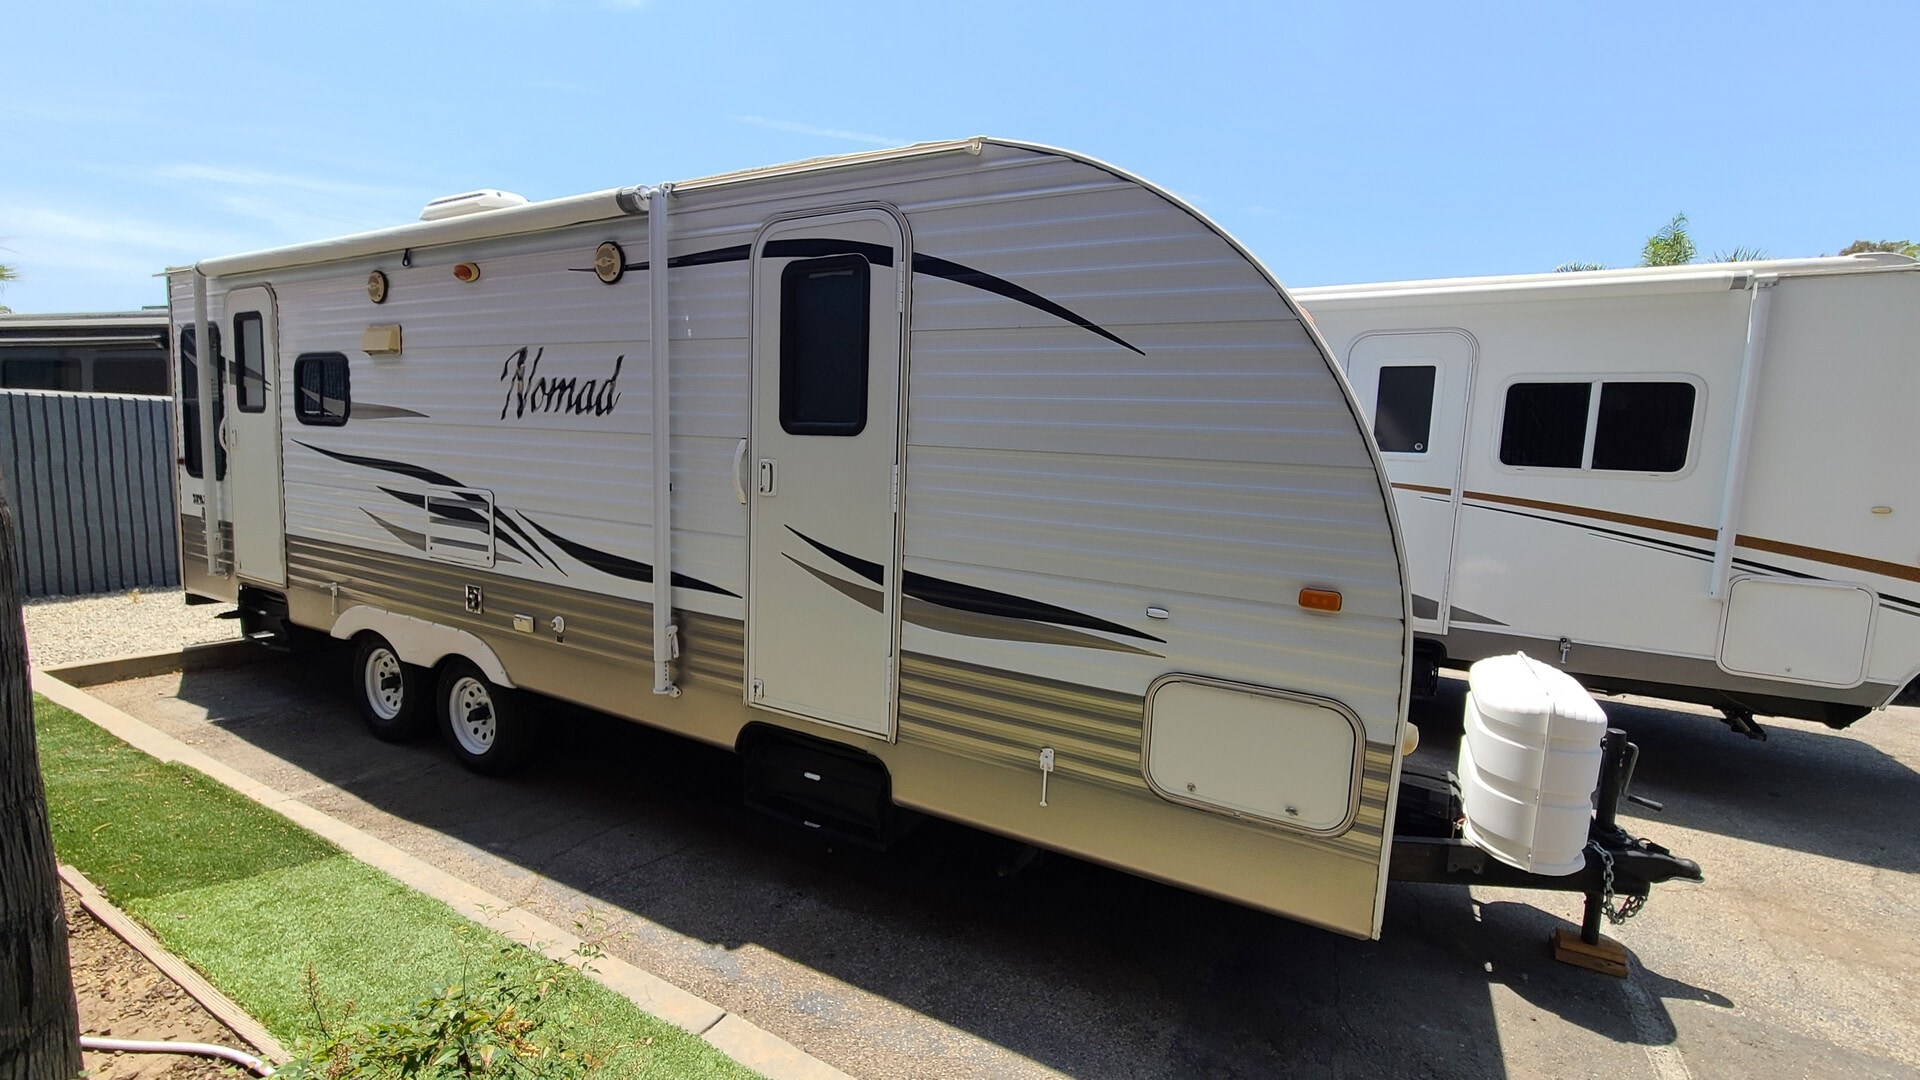 Used, 2011, Nomad by Skyline, 265, Travel Trailers